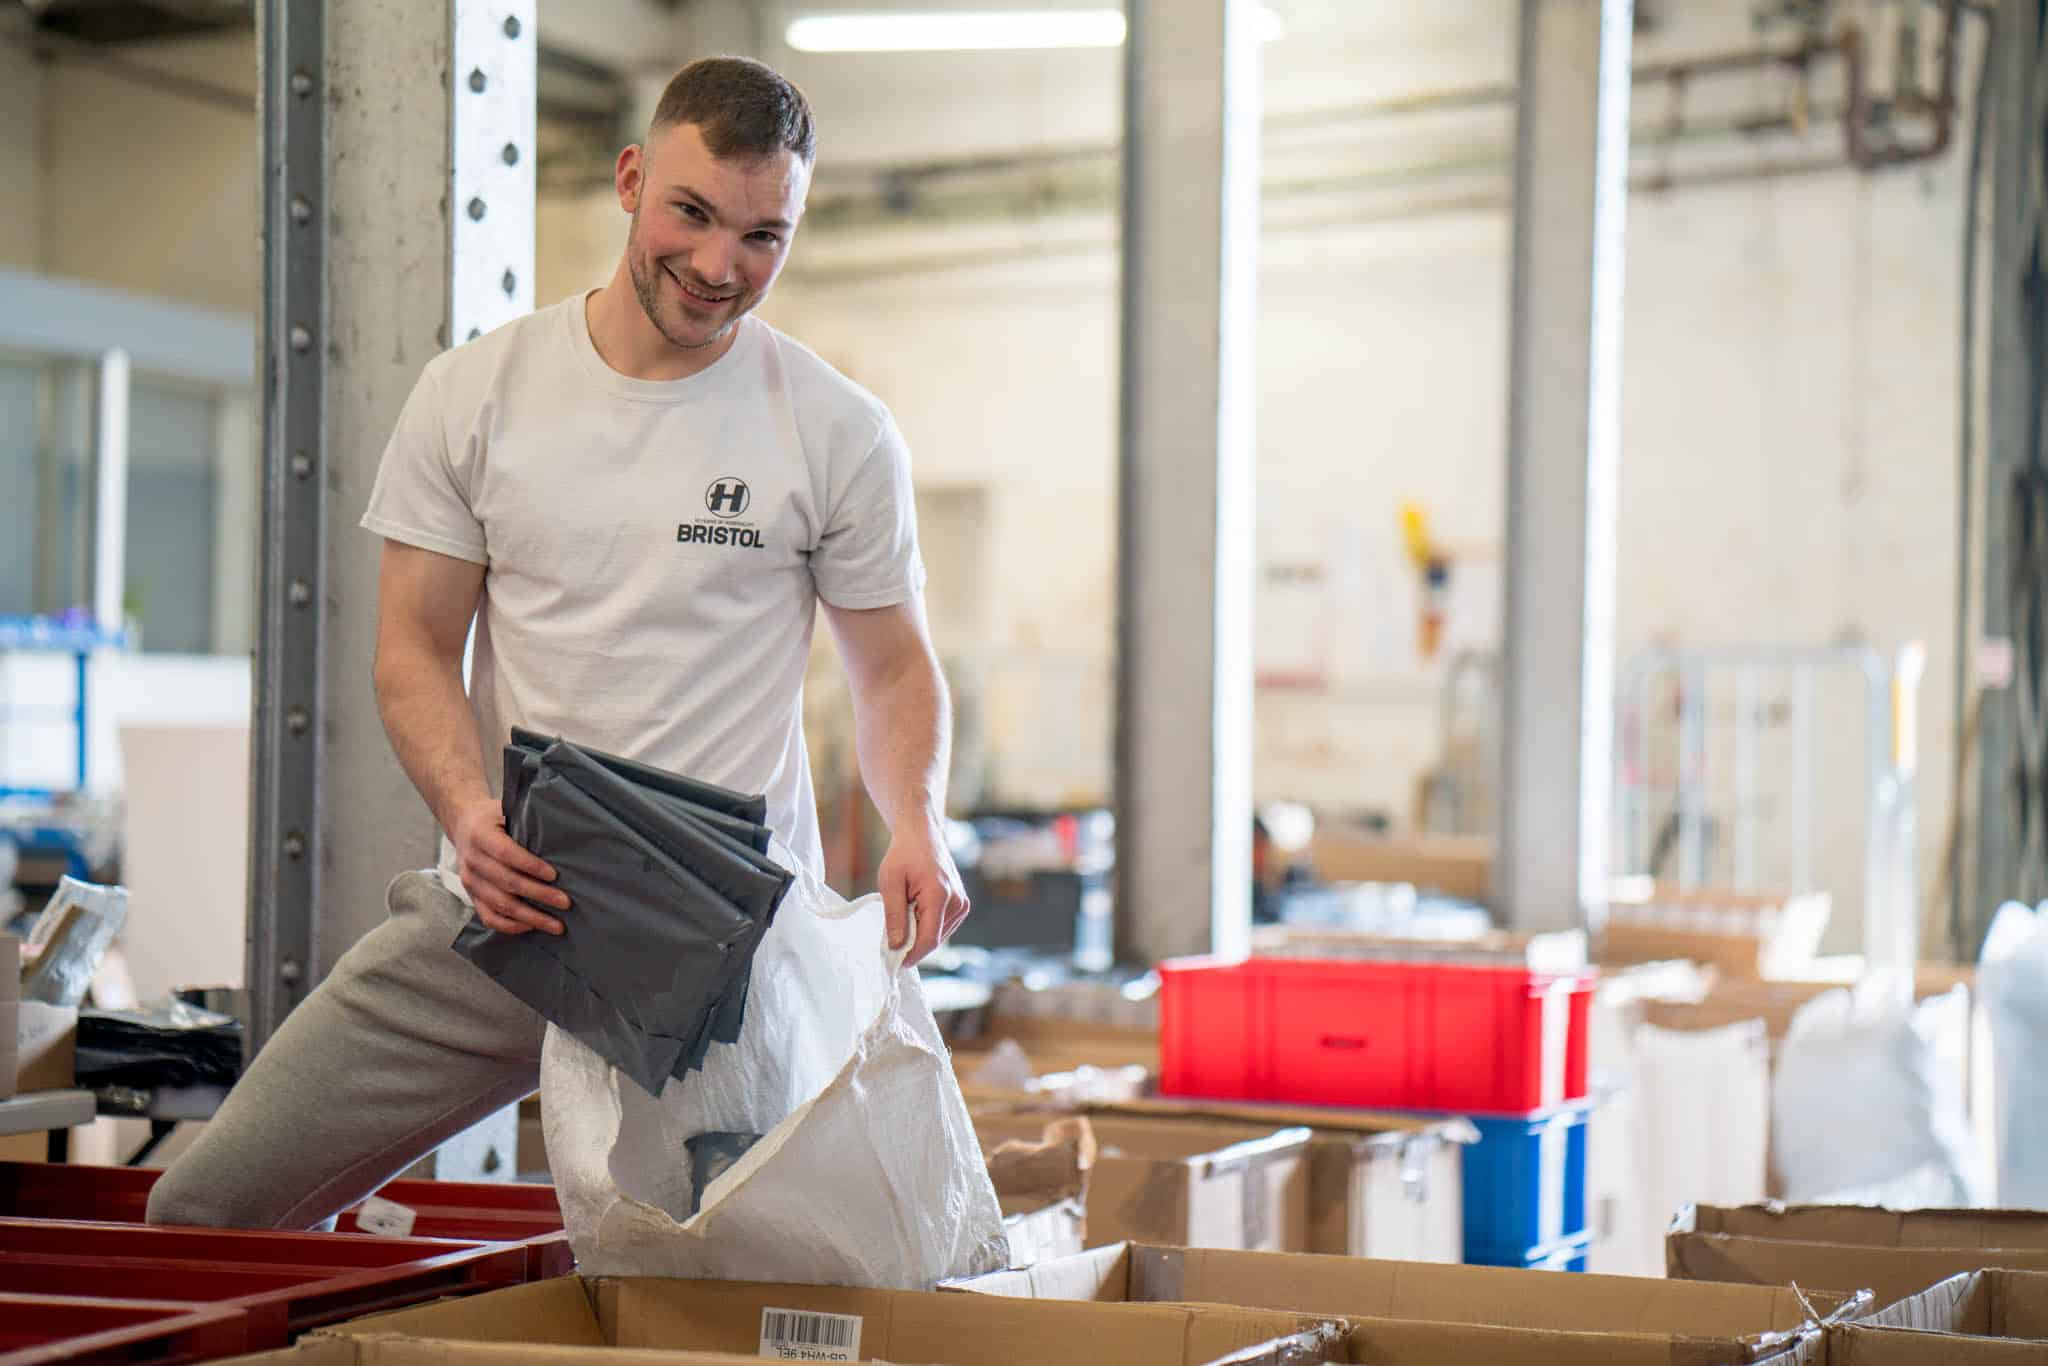 Chamber of Commerce membership business, man filling bag with parcels